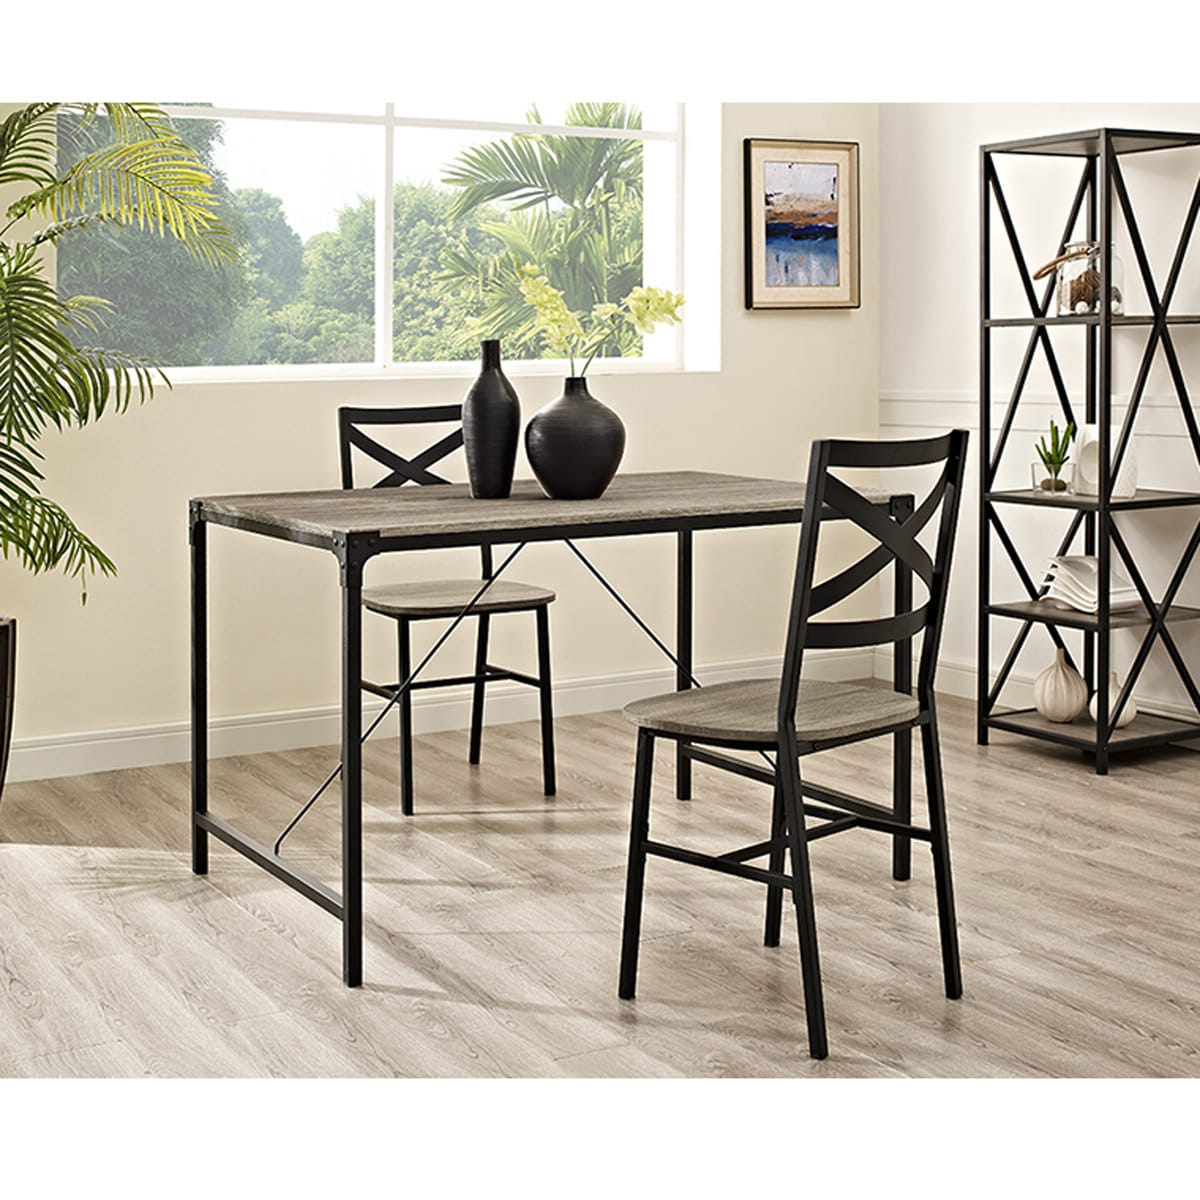 Most Current Angle Iron 48 Inch Wood Dining Table – Driftwoodwalker Regarding Transitional Driftwood Casual Dining Tables (View 16 of 25)